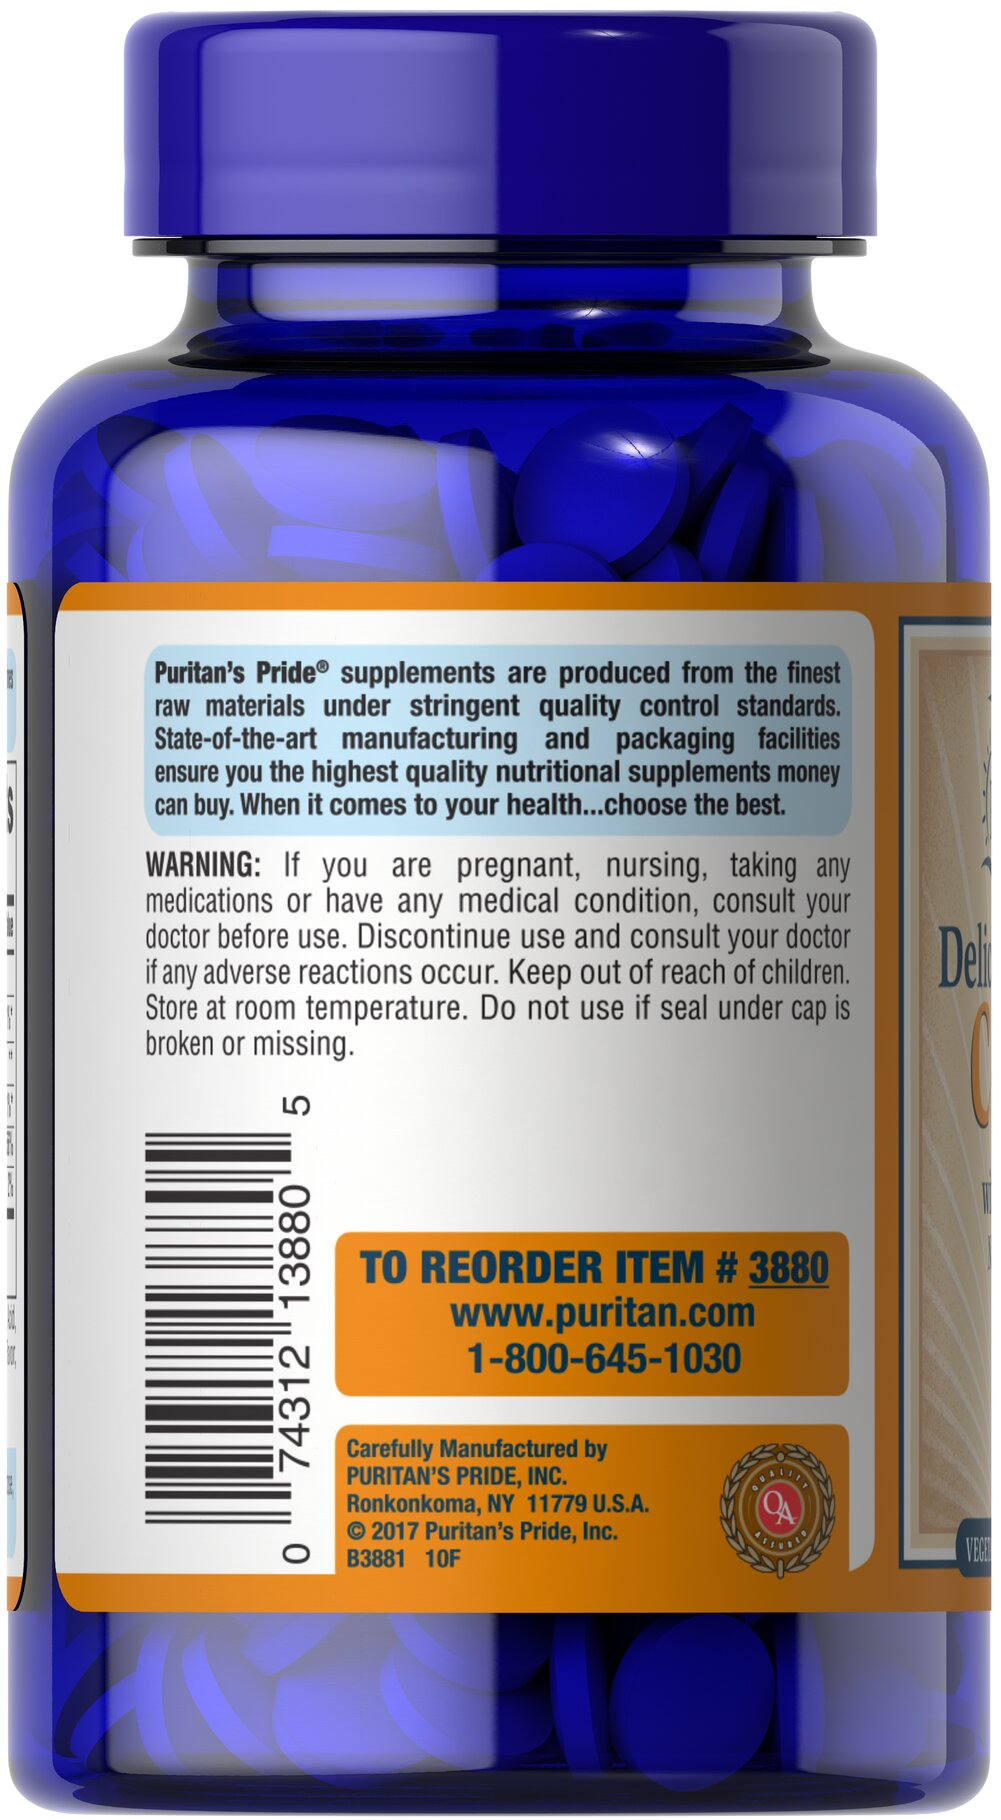 Chewable Vitamin C 500 mg with Rose Hips Thumbnail Alternate Bottle View